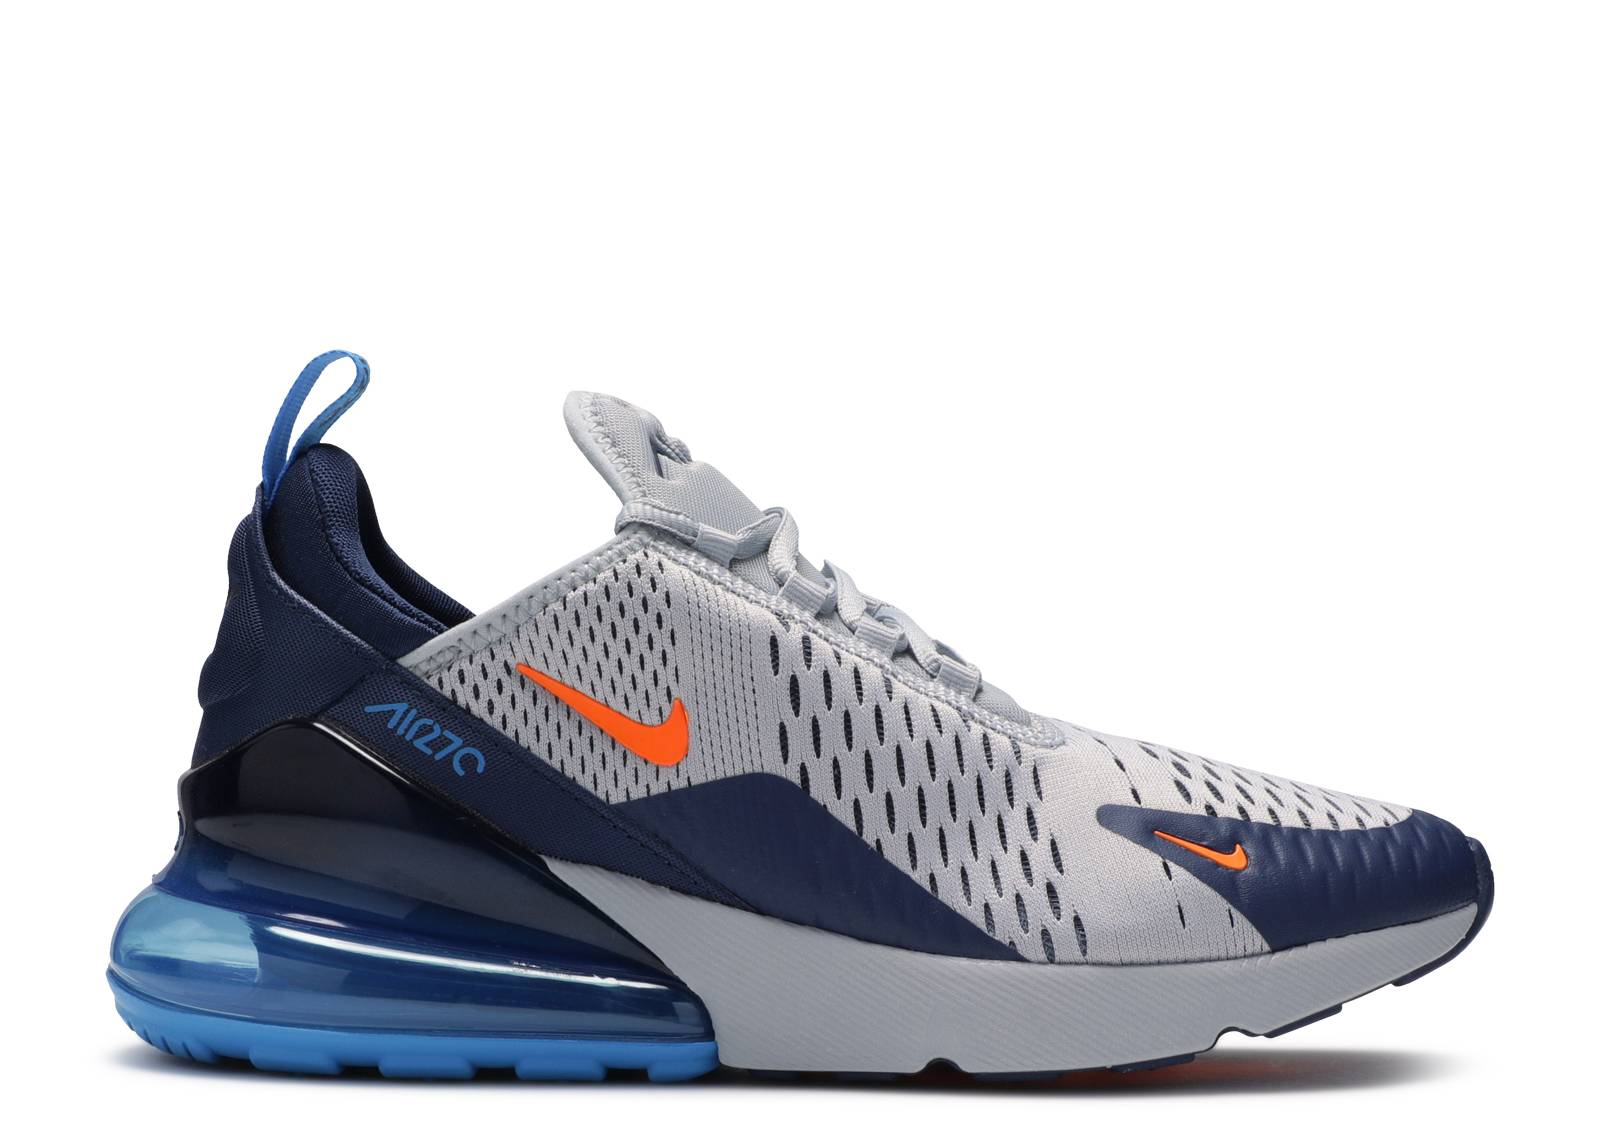 Nike Wmns Air Max 270 Wolf GreyMidnight Navy Photo Blue